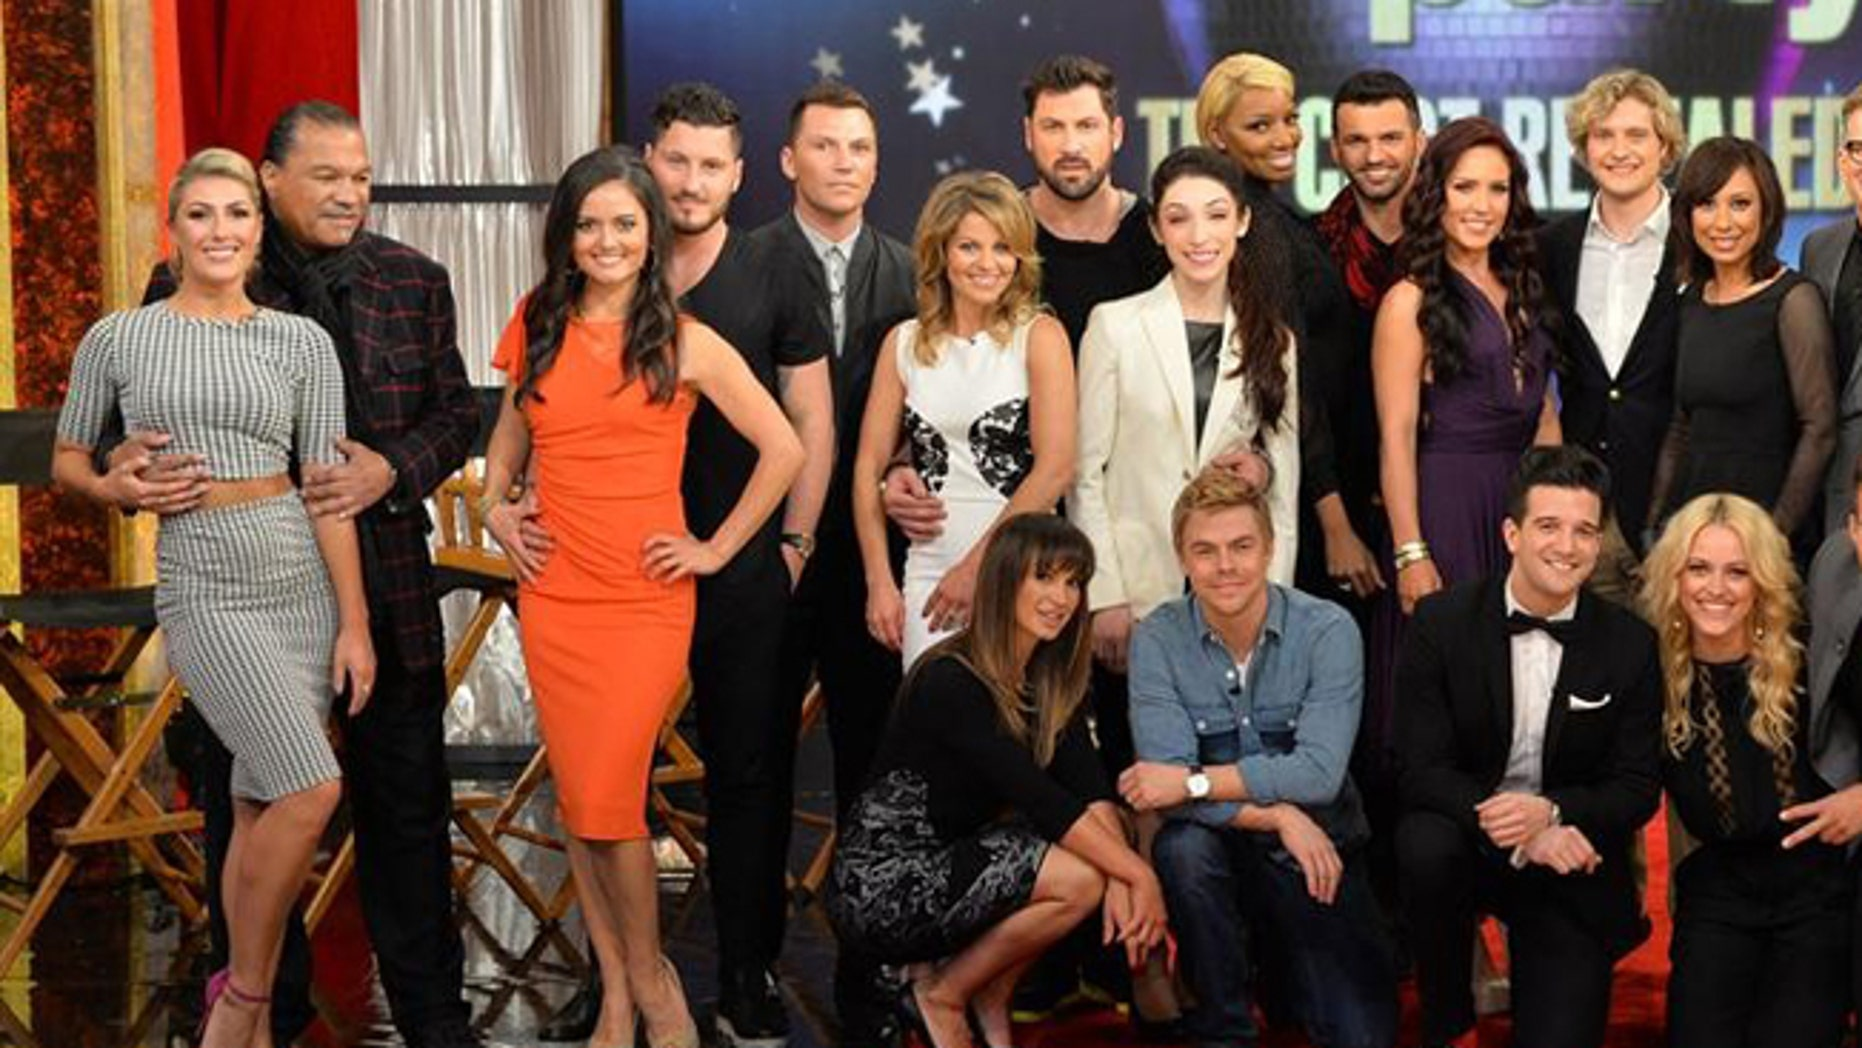 """GOOD MORNING AMERICA - """"Dancing with the Stars"""" - This season's dynamic lineup of stars -- including two Olympic Gold Medalists, a game show host, a swimming legend and a teen pop star - will perform for the first time on live national television with their professional partners during the two-hour season premiere of """"Dancing with the Stars,"""" MONDAY, MARCH 17 (8:00-10:01 p.m., ET) on the ABC Television Network. (ABC/Todd Wawrychuk)STANDING: EMMA SLATER, BILLY DEE WILLIAMS, DANICA MCKELLAR, VALENTIN CHMERKOVSKIY, SEAN AVERY, CANDACE CAMERON BURE, MAKSIM CHMERKOVSKIY, MERYL DAVIS, NENE LEAKES, TONY DOVOLANI, SHARNA BURGESS, CHARLIE WHITE, CHERYL BURKE, DREW CAREY, DIANA NYAD, HENRY BYALIKOV; SITTING: KARINA SMIRNOFF, DEREK HOUGH, MARK BALLAS, PETA MURGATROYD, JAMES MASLOW, WITNEY CARSON, CODY SIMPSON"""